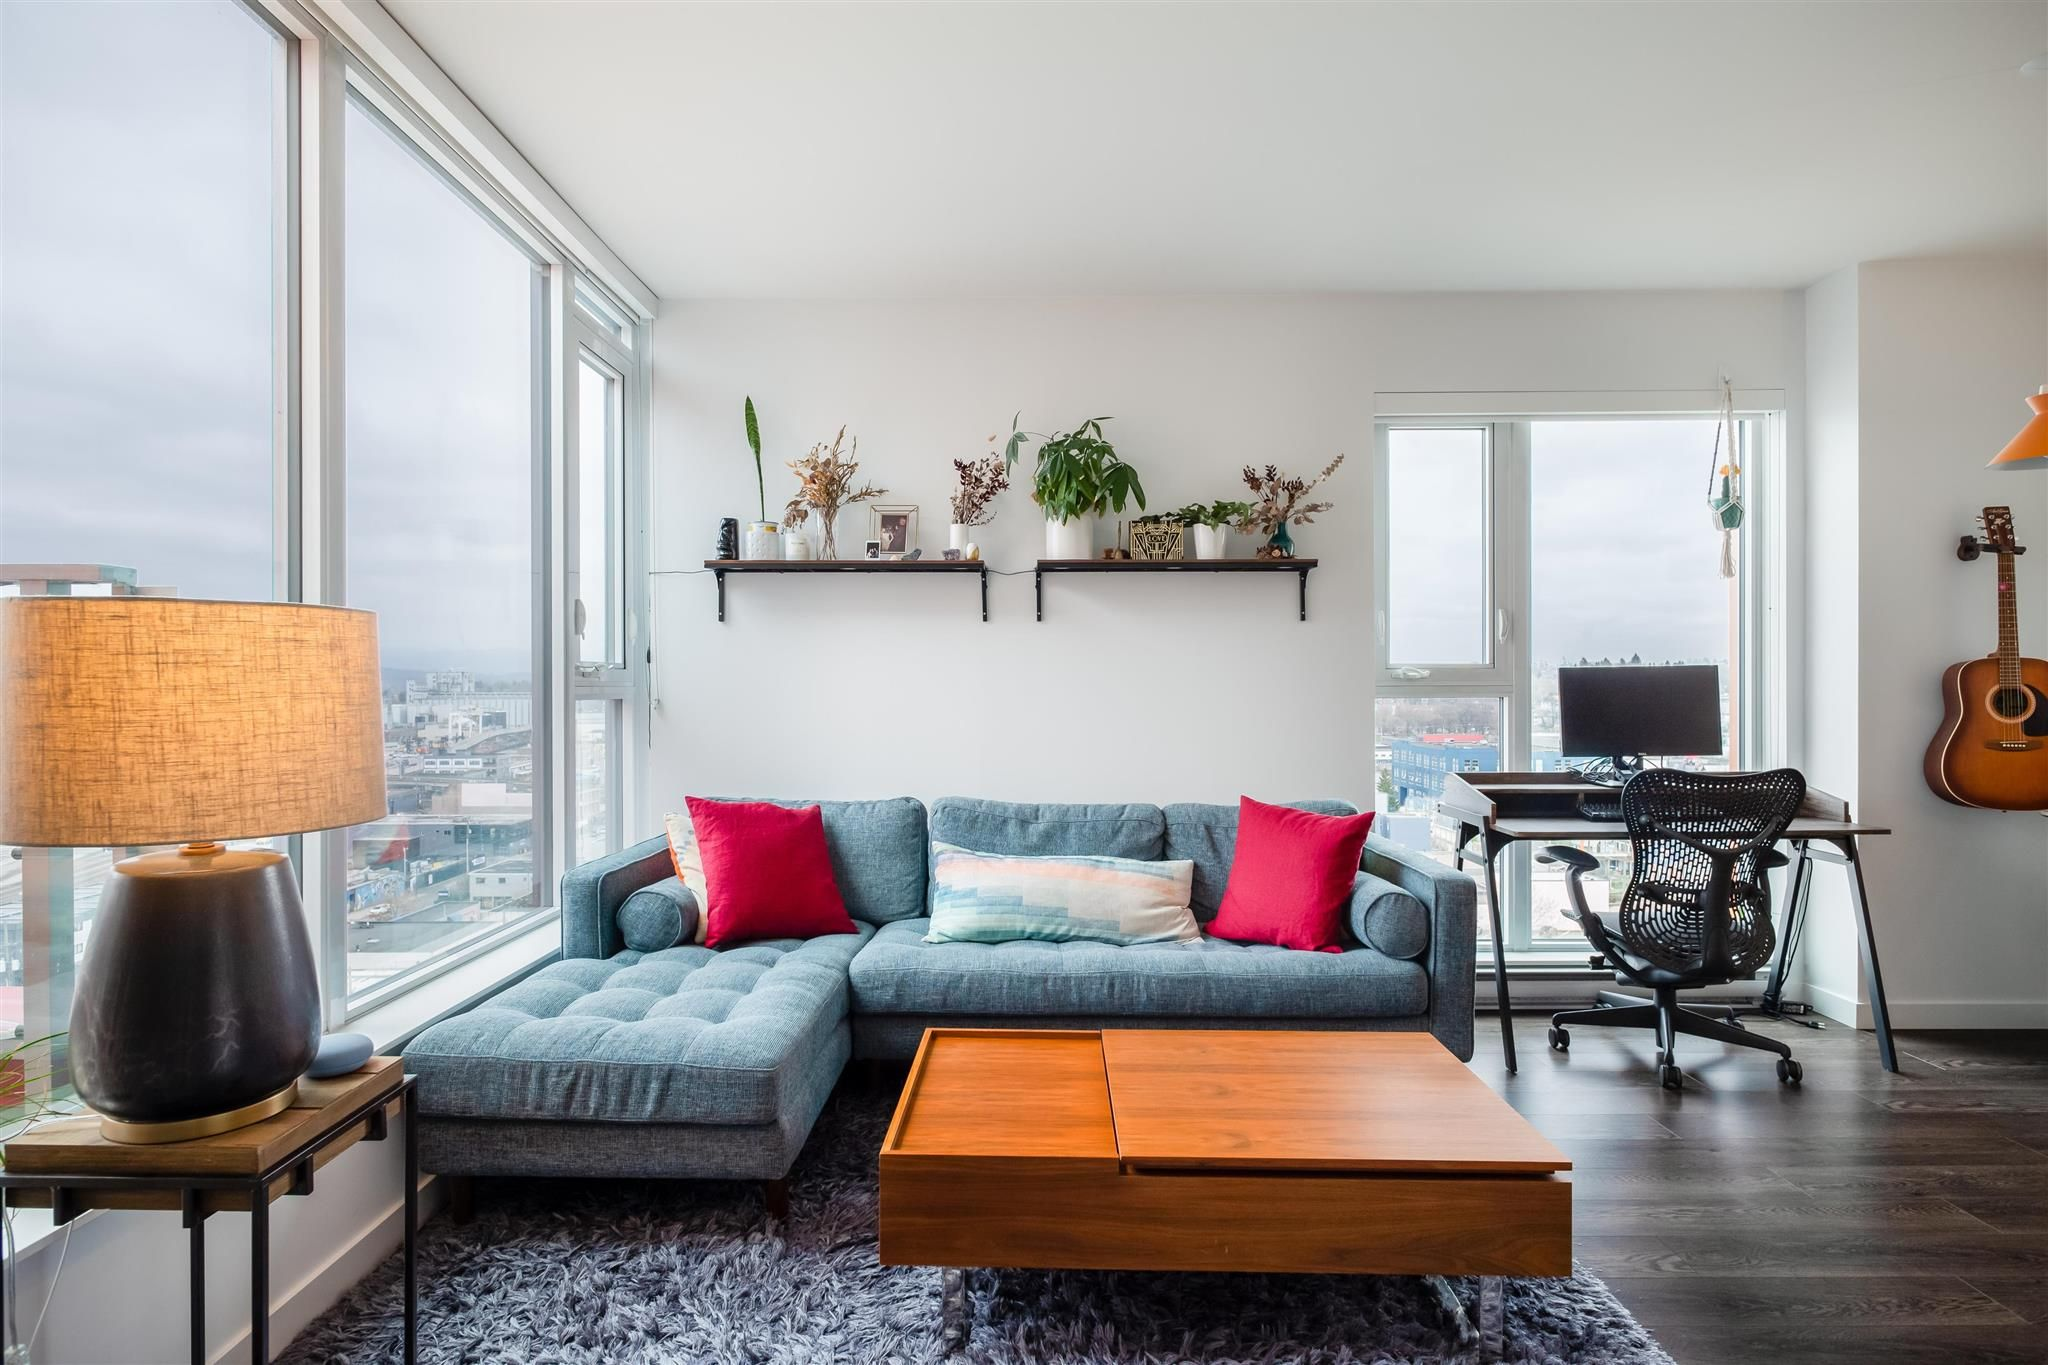 """Main Photo: PH4 983 E HASTINGS Street in Vancouver: Strathcona Condo for sale in """"STRATHCONA VILLAGE"""" (Vancouver East)  : MLS®# R2603443"""